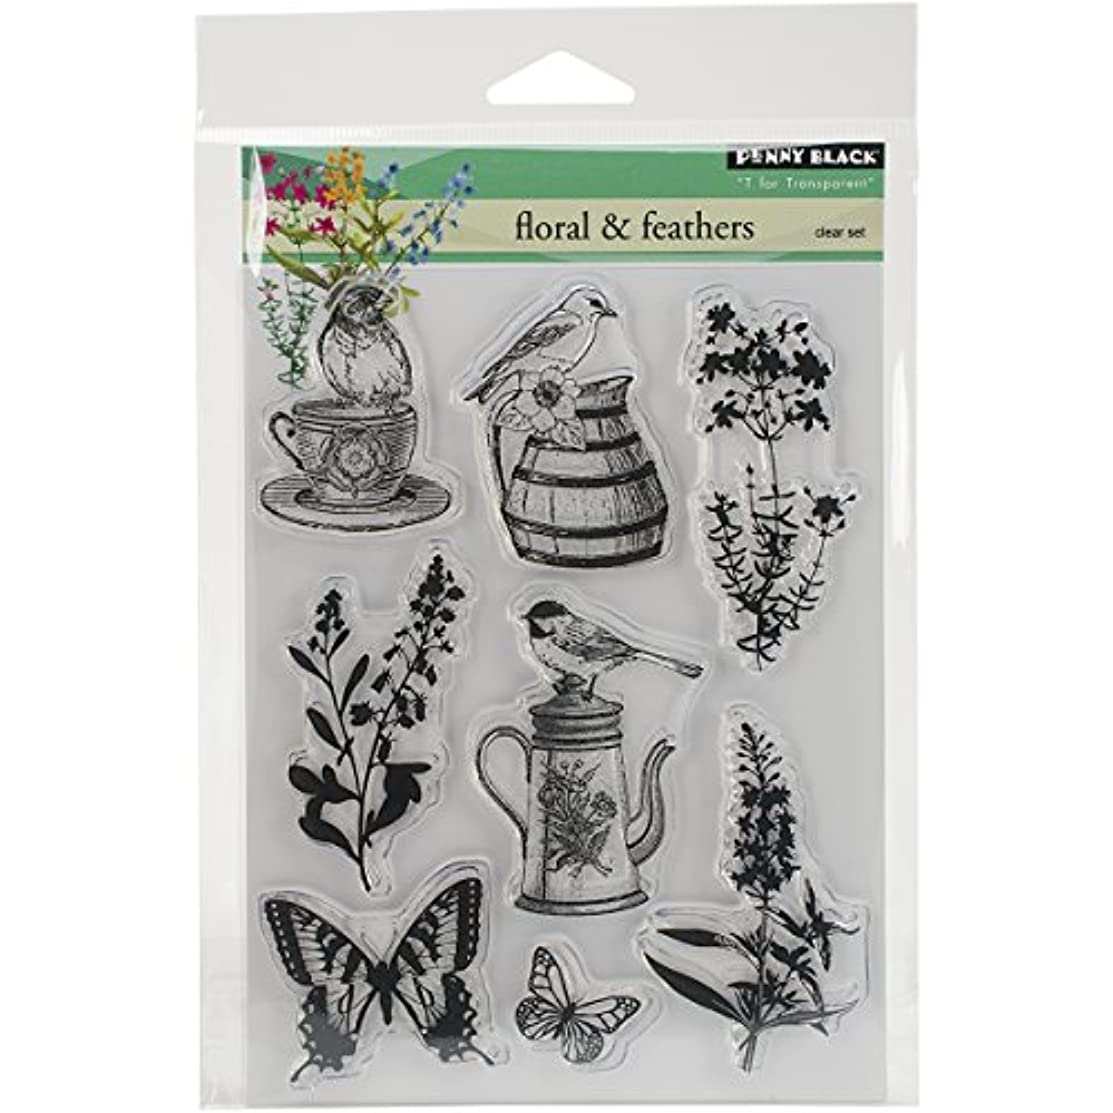 Penny Black PB30296 Florals & Feathers Clear Stamps Sheet, 5 x 6.5